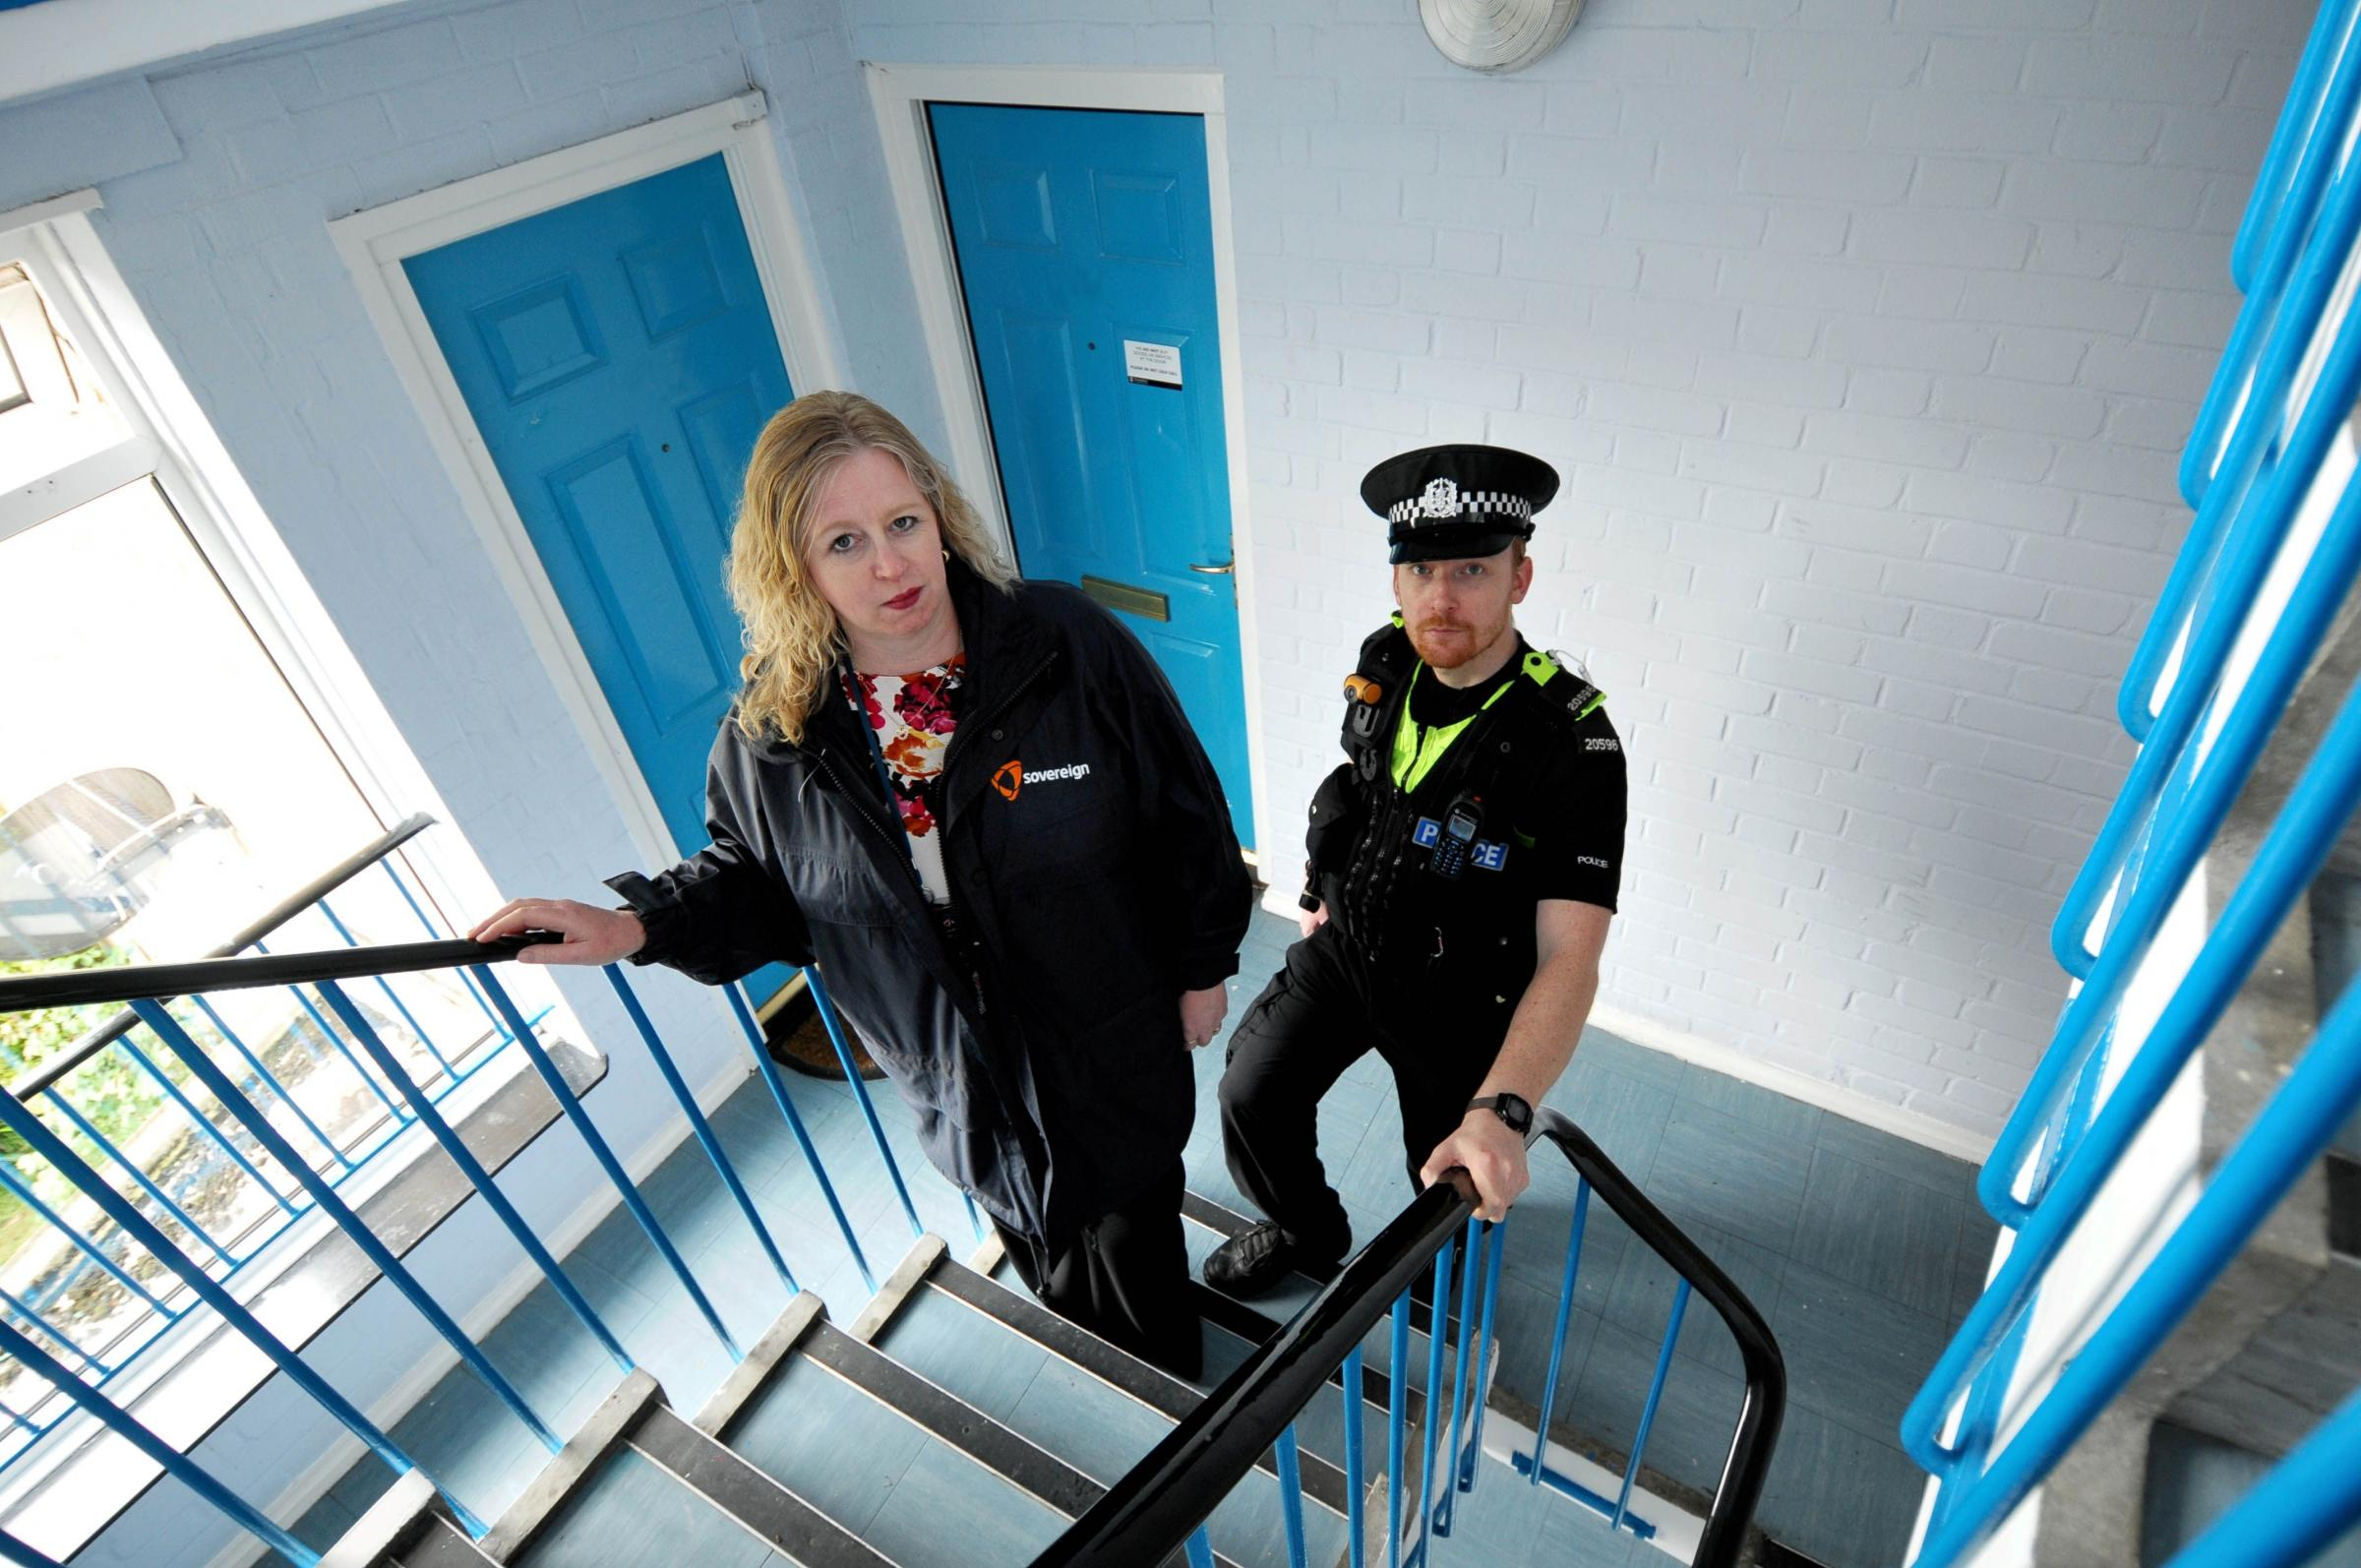 Sovereign housing officer Maryanne Yesil and PC Chris Brindley